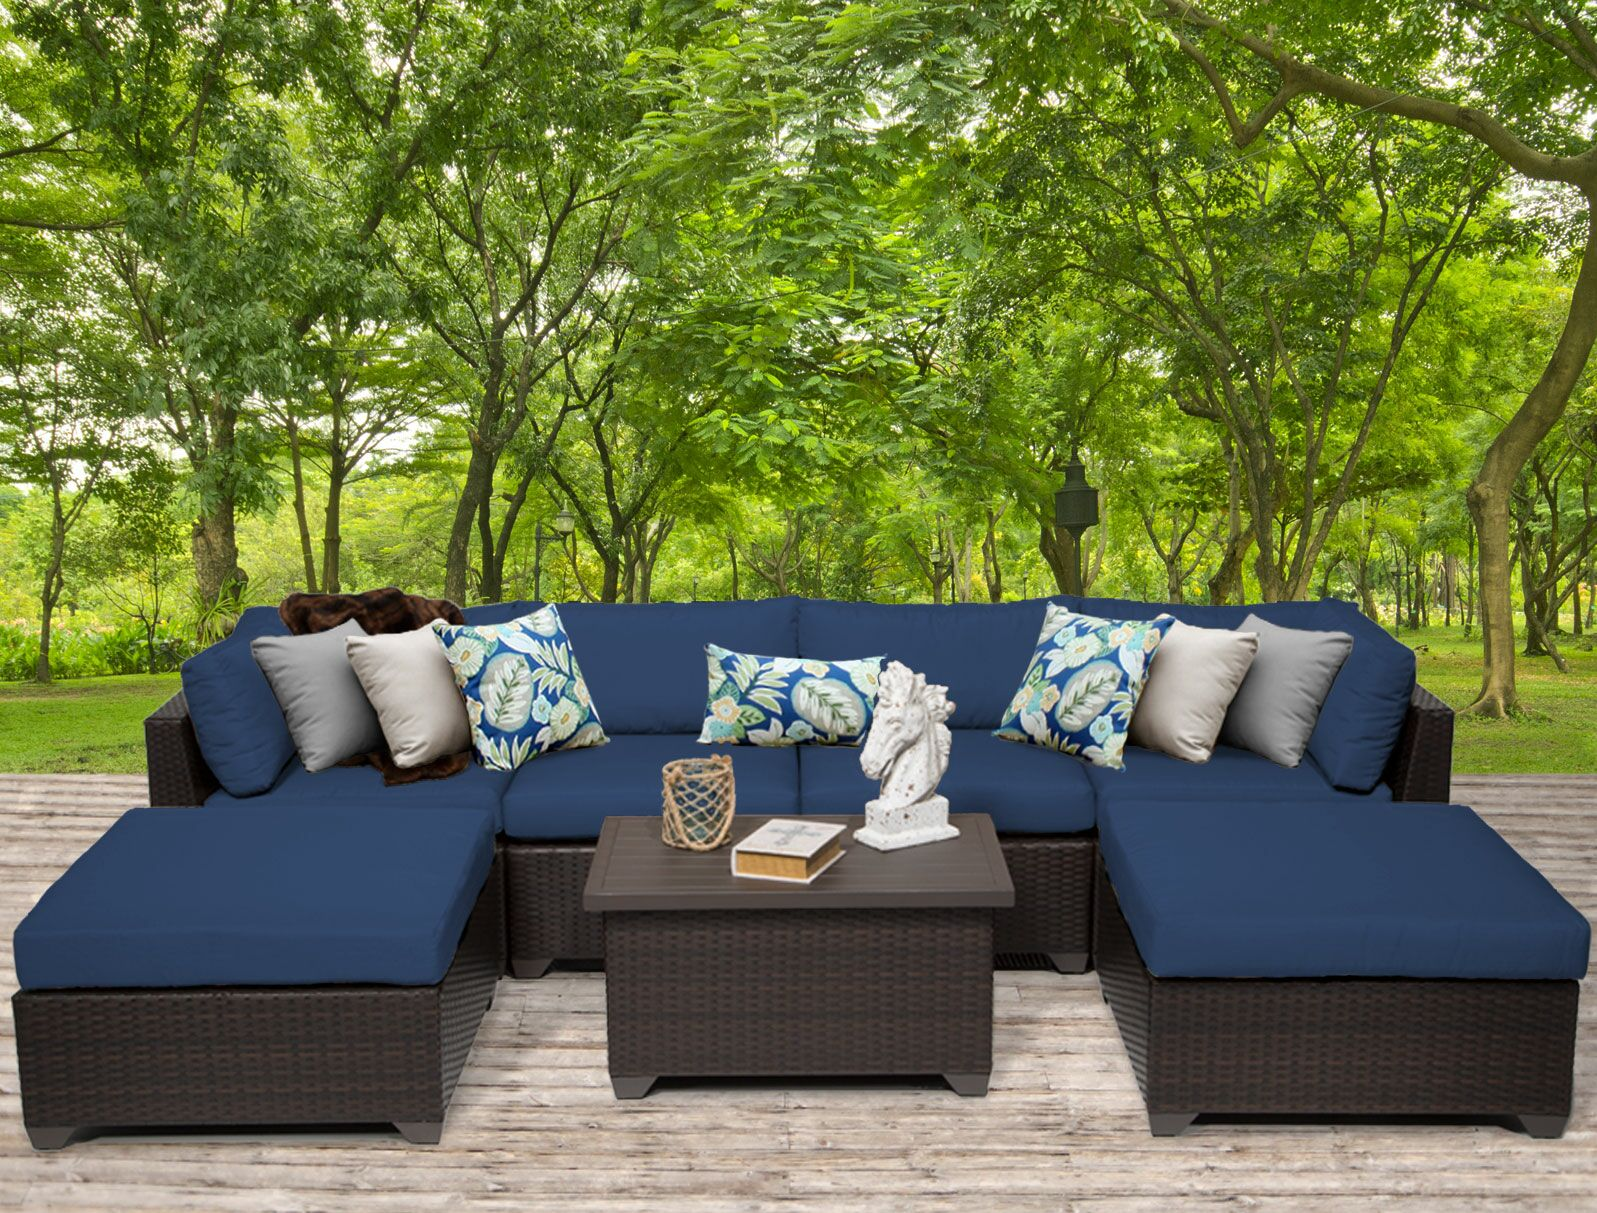 Belle 7 Piece Sectional Set with Cushions Fabric: Navy